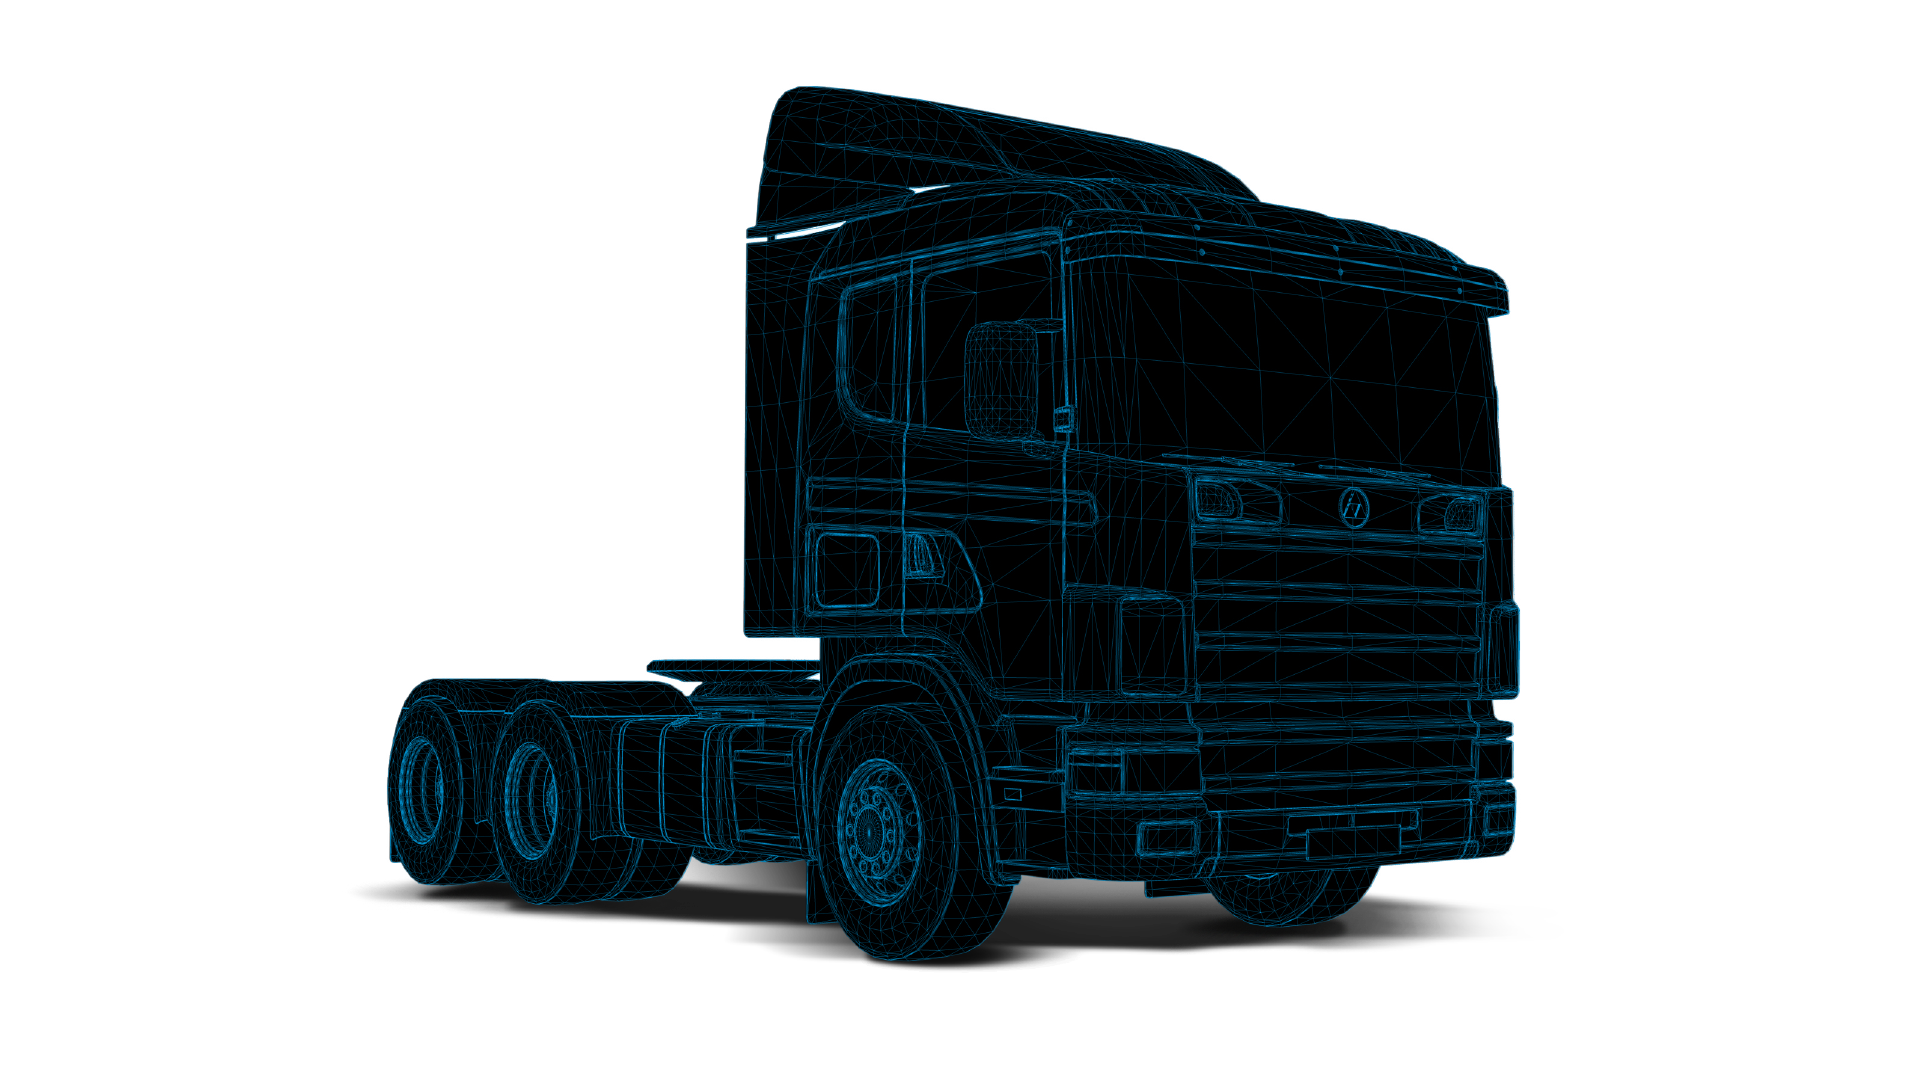 Industrial & Commercial Vehicles